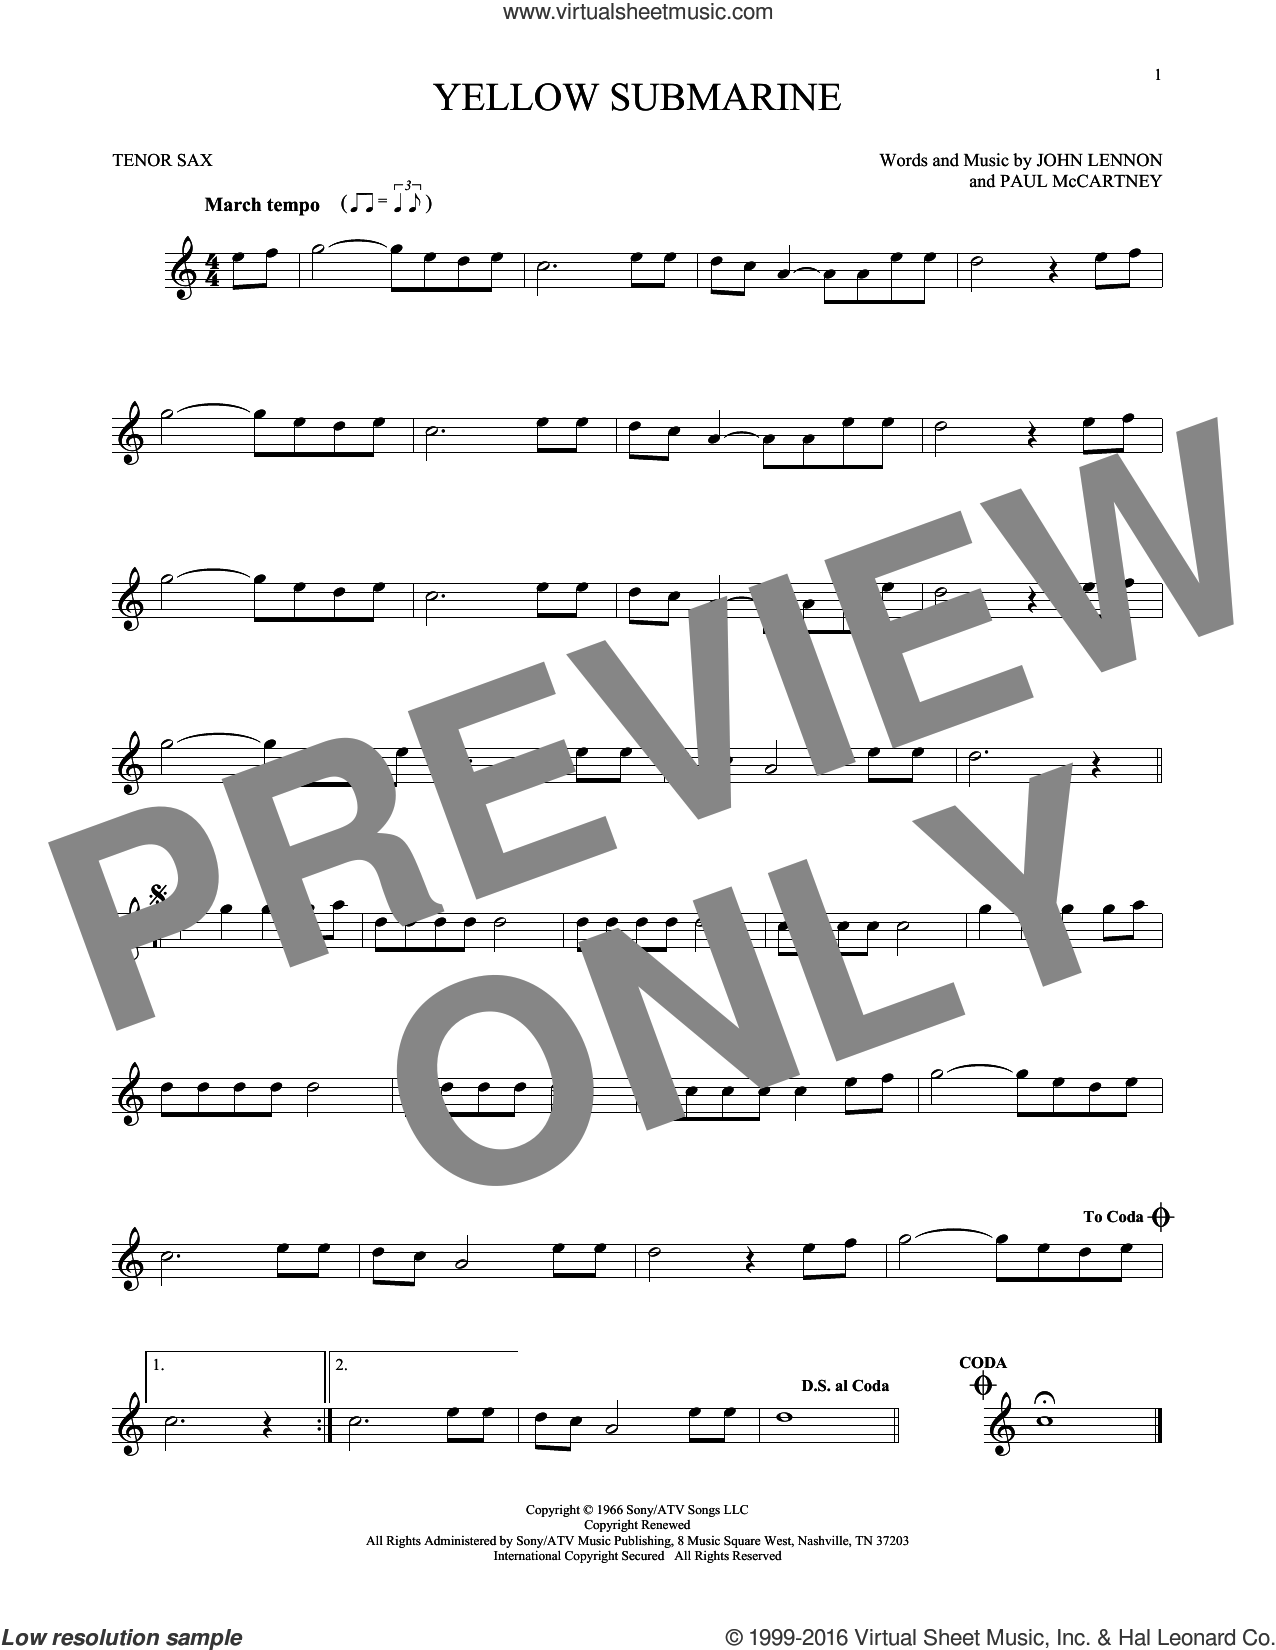 Yellow Submarine sheet music for tenor saxophone solo by The Beatles, John Lennon and Paul McCartney, intermediate skill level